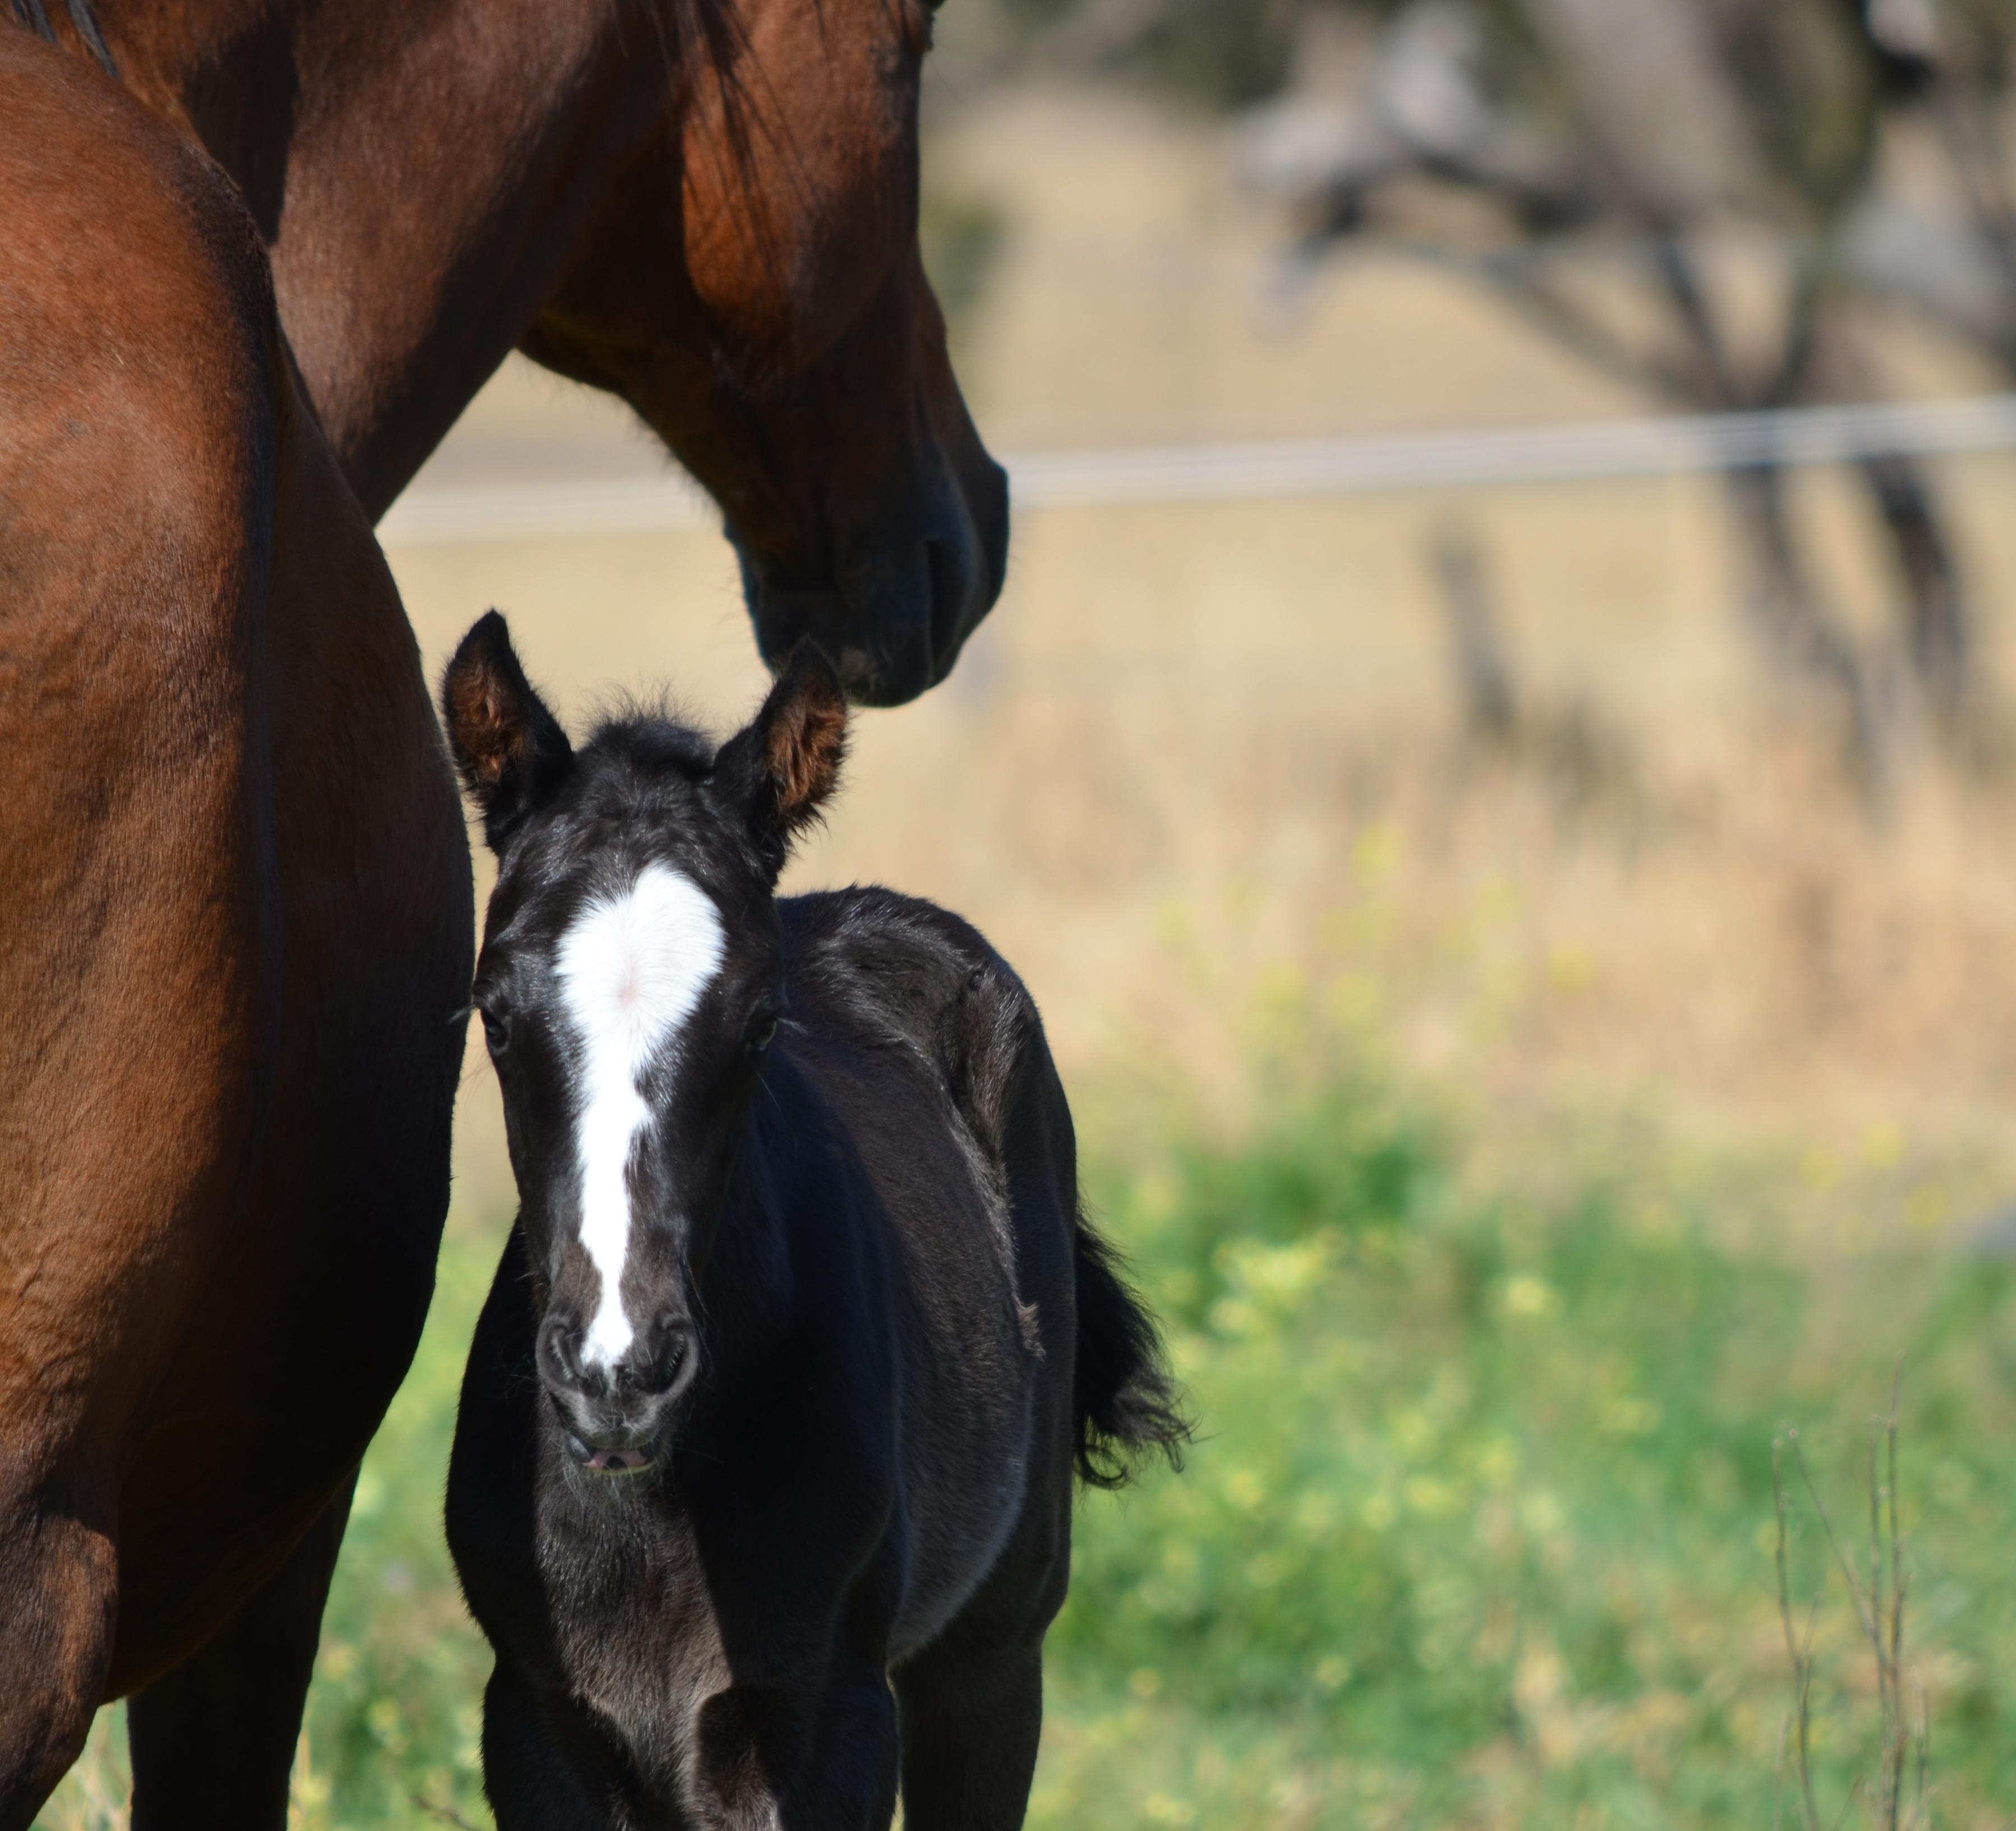 Star Black Minstril mare with Command filly foal -Epic